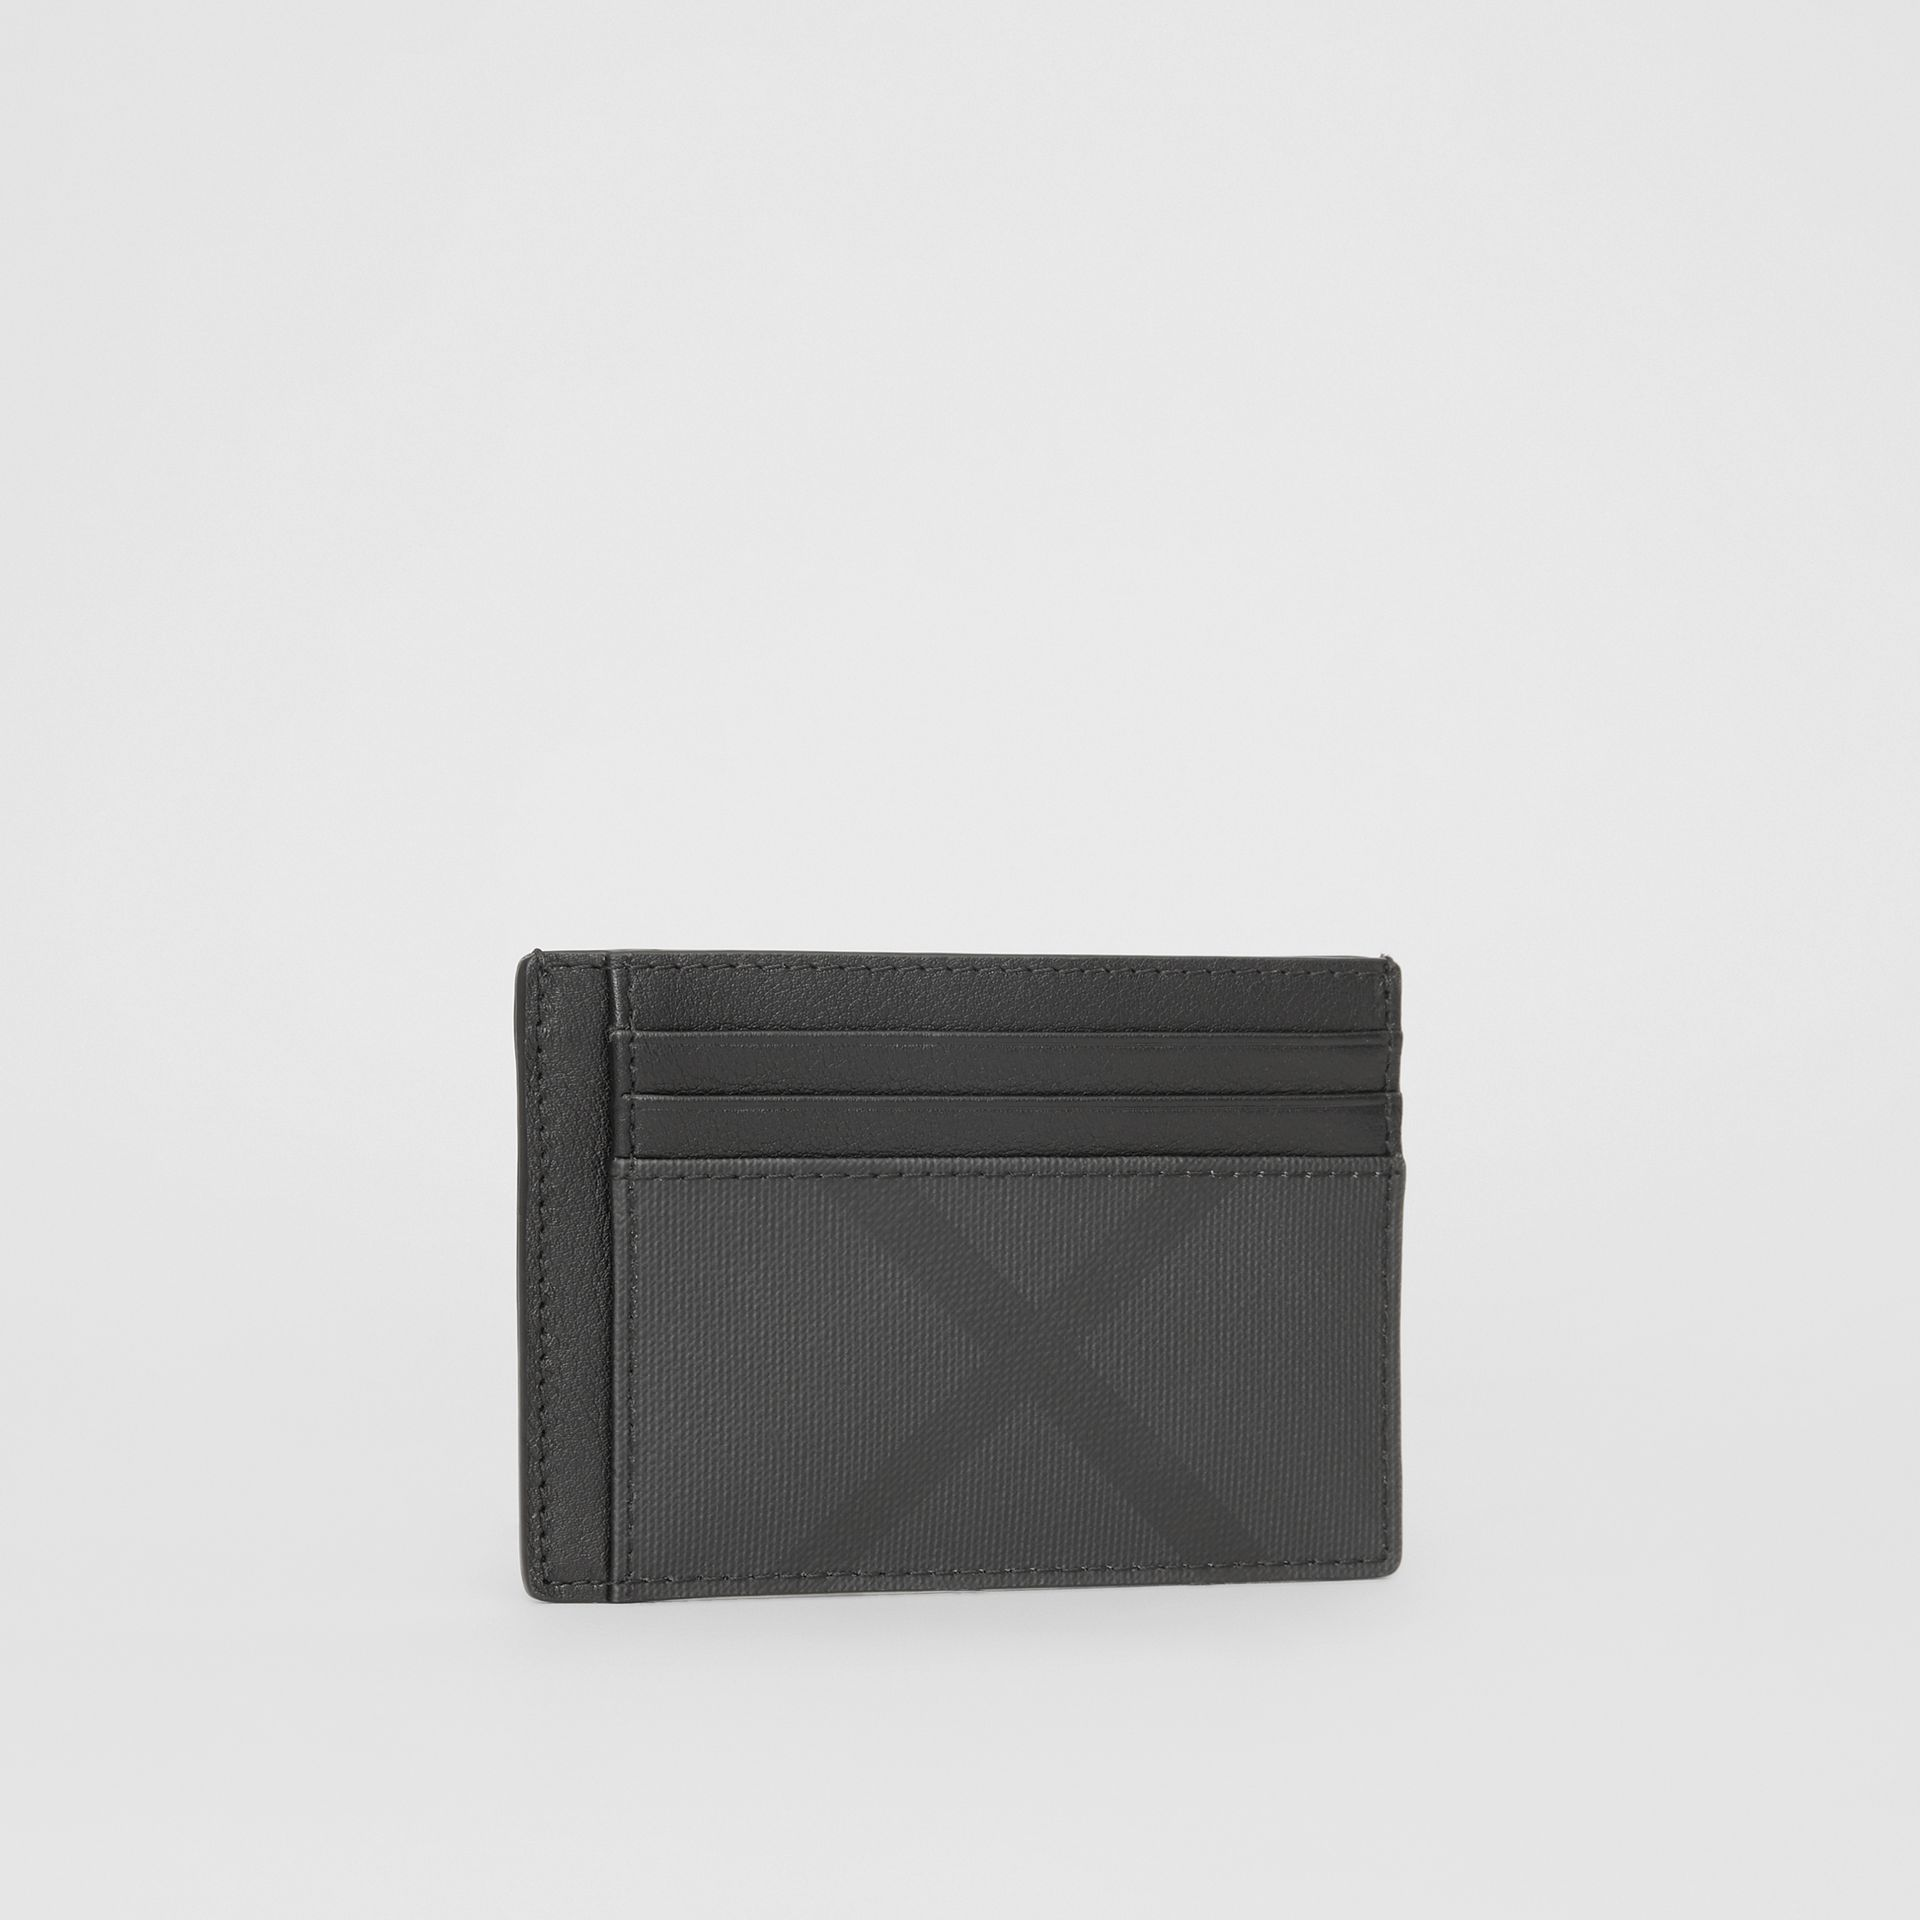 London Check and Leather Card Case in Dark Charcoal - Men | Burberry - gallery image 3